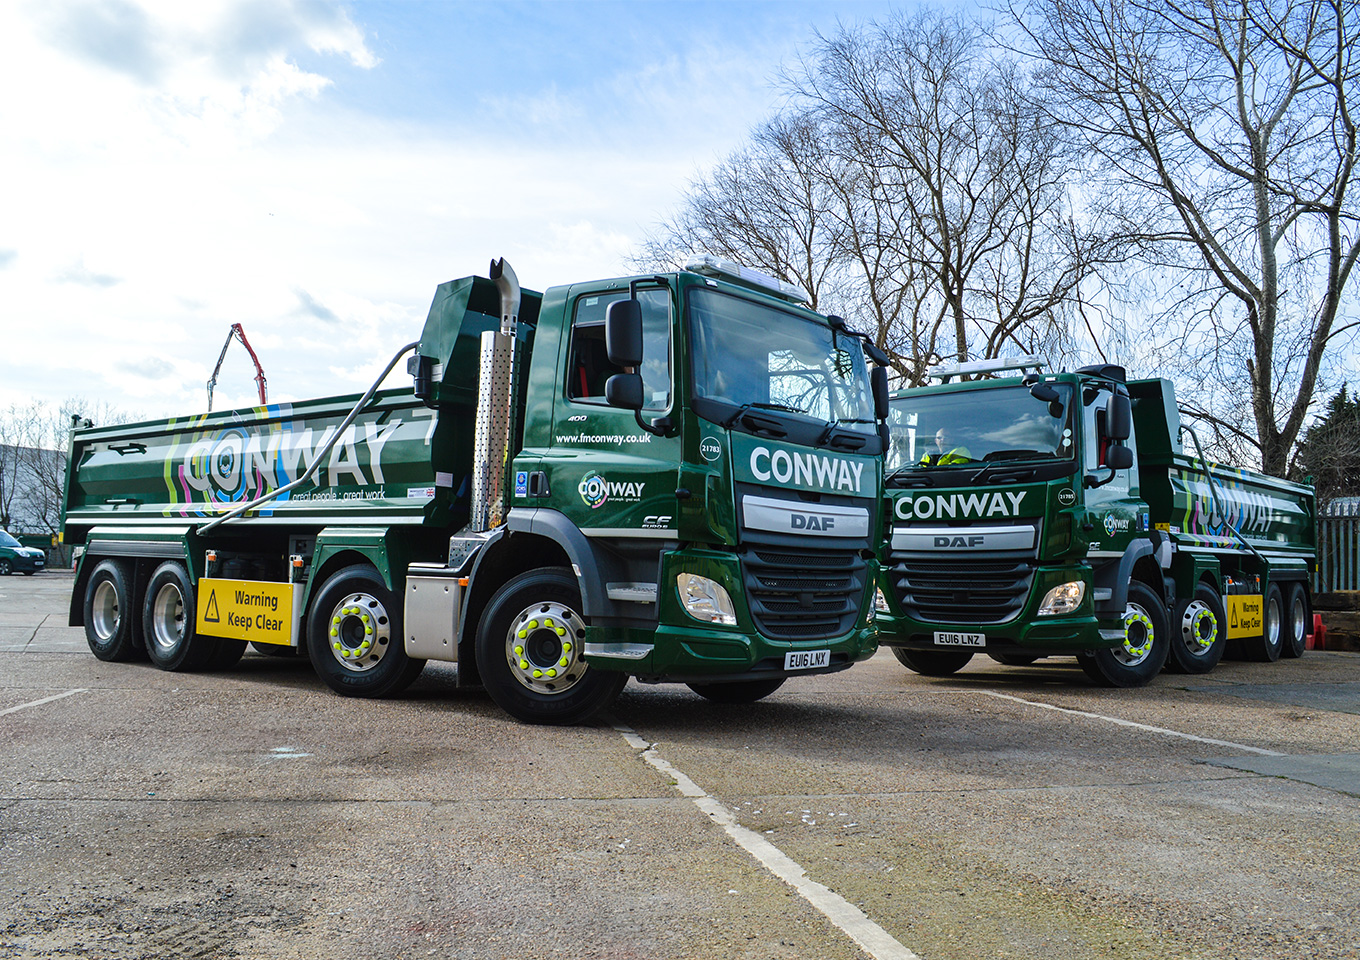 FM Conway leads on air quality standards with £7m fleet investment thumbnail